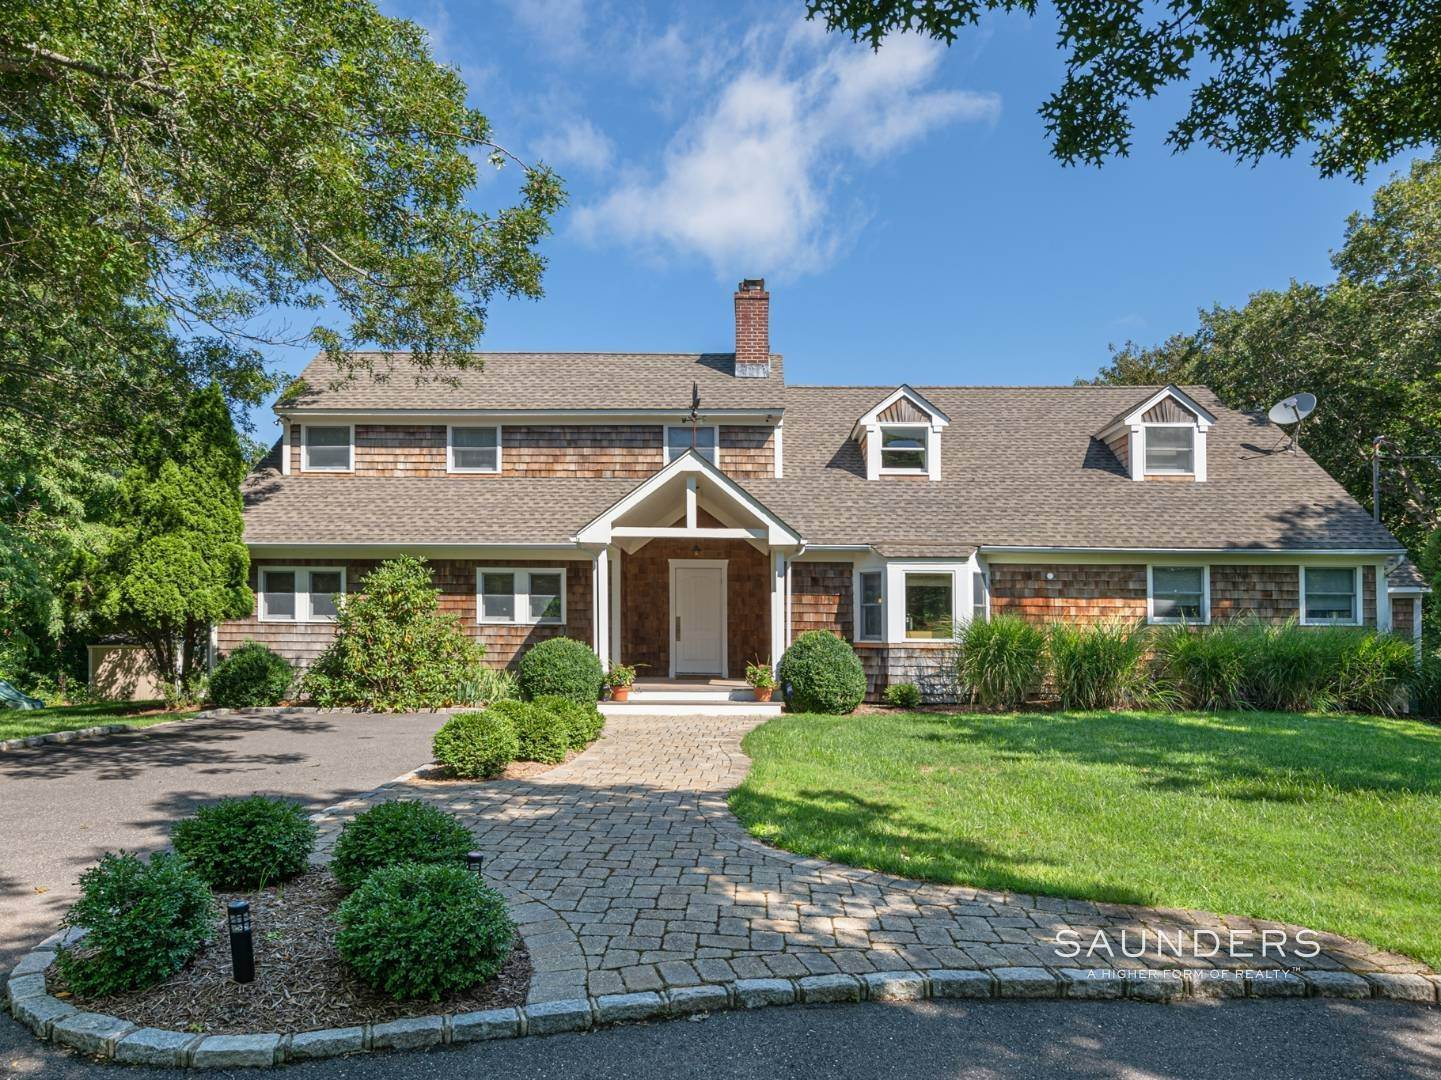 Single Family Homes for Sale at Turnkey Southampton Oasis 41 Hillside Road, Southampton, Southampton Town, NY 11968